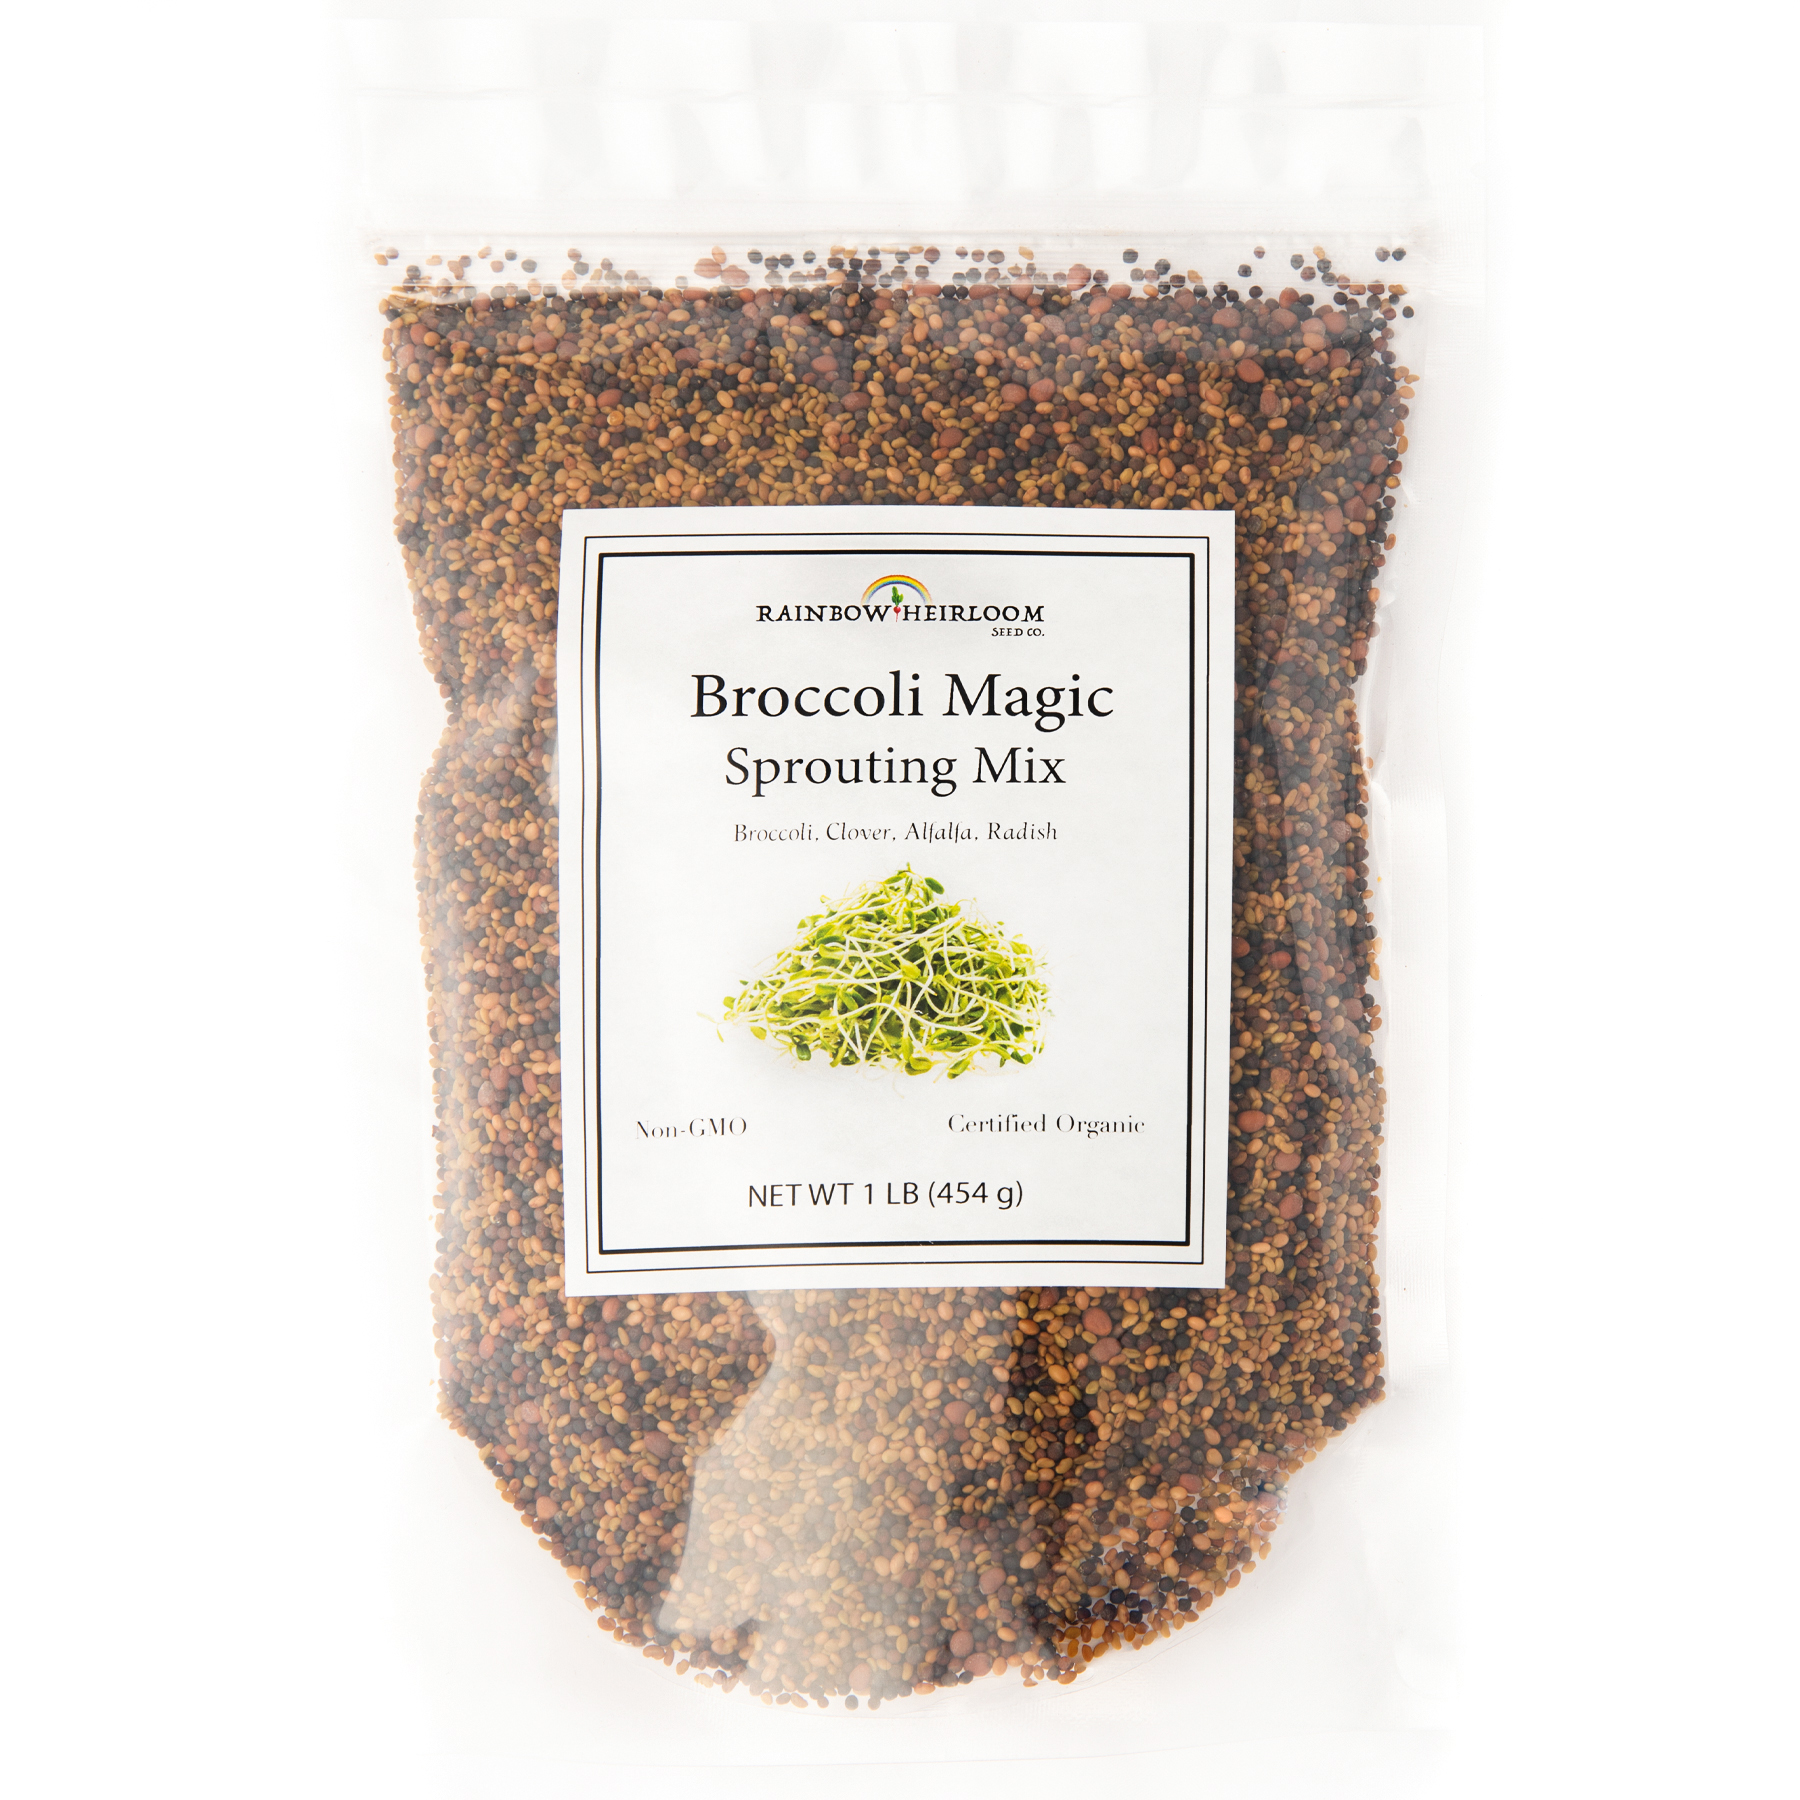 Broccoli Magic Sprouting Seed Mix